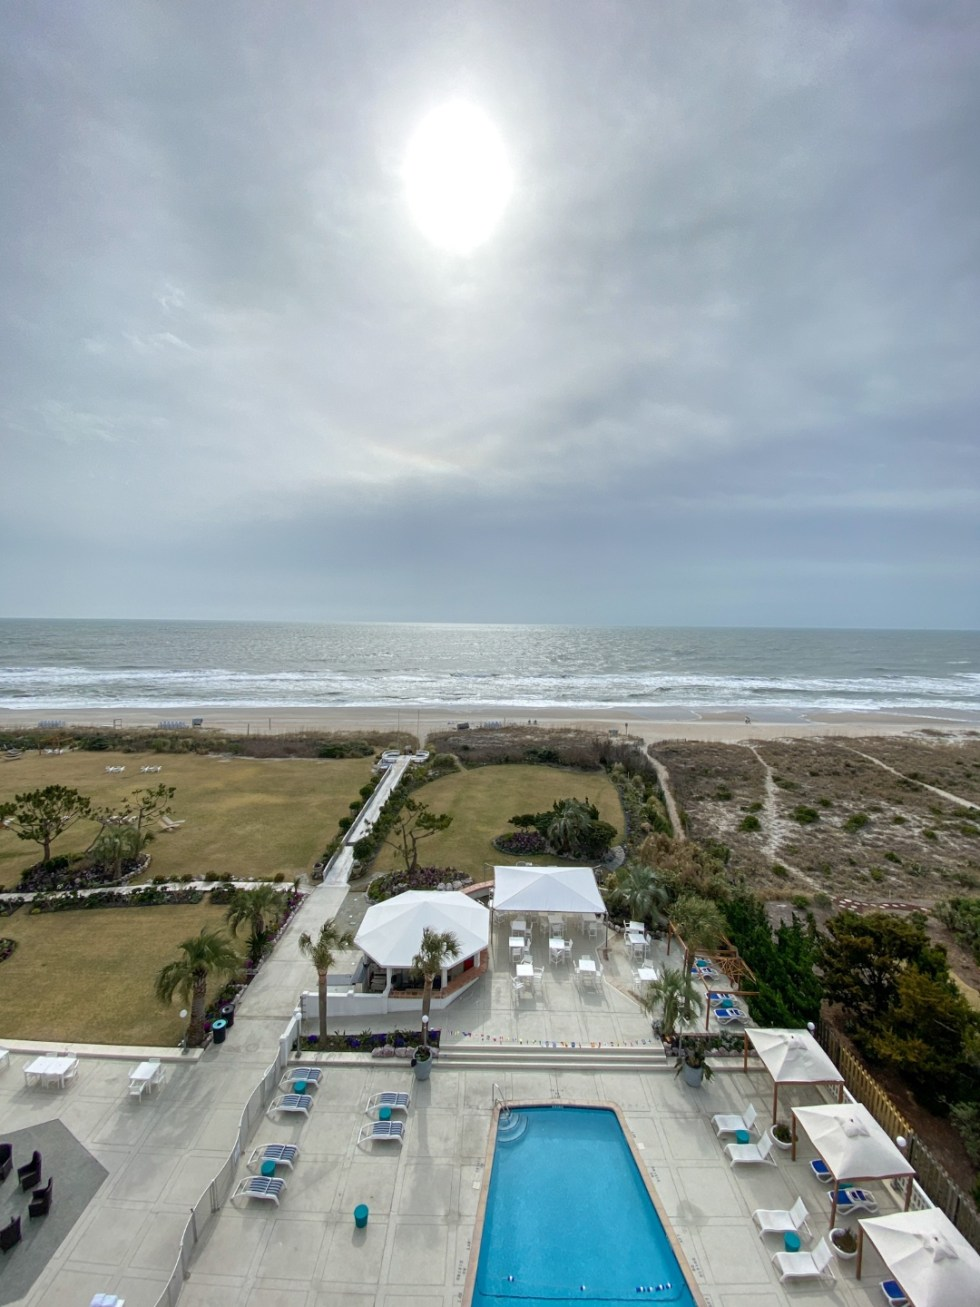 A Spring Weekend in Wilmington, NC: the Best Things to Do - I'm Fixin' To - @imfixintoblog |Weekend in Wilmington by popular NC travel blog, I'm Fixin' To: image of a outdoor swimming pool next to the beach.